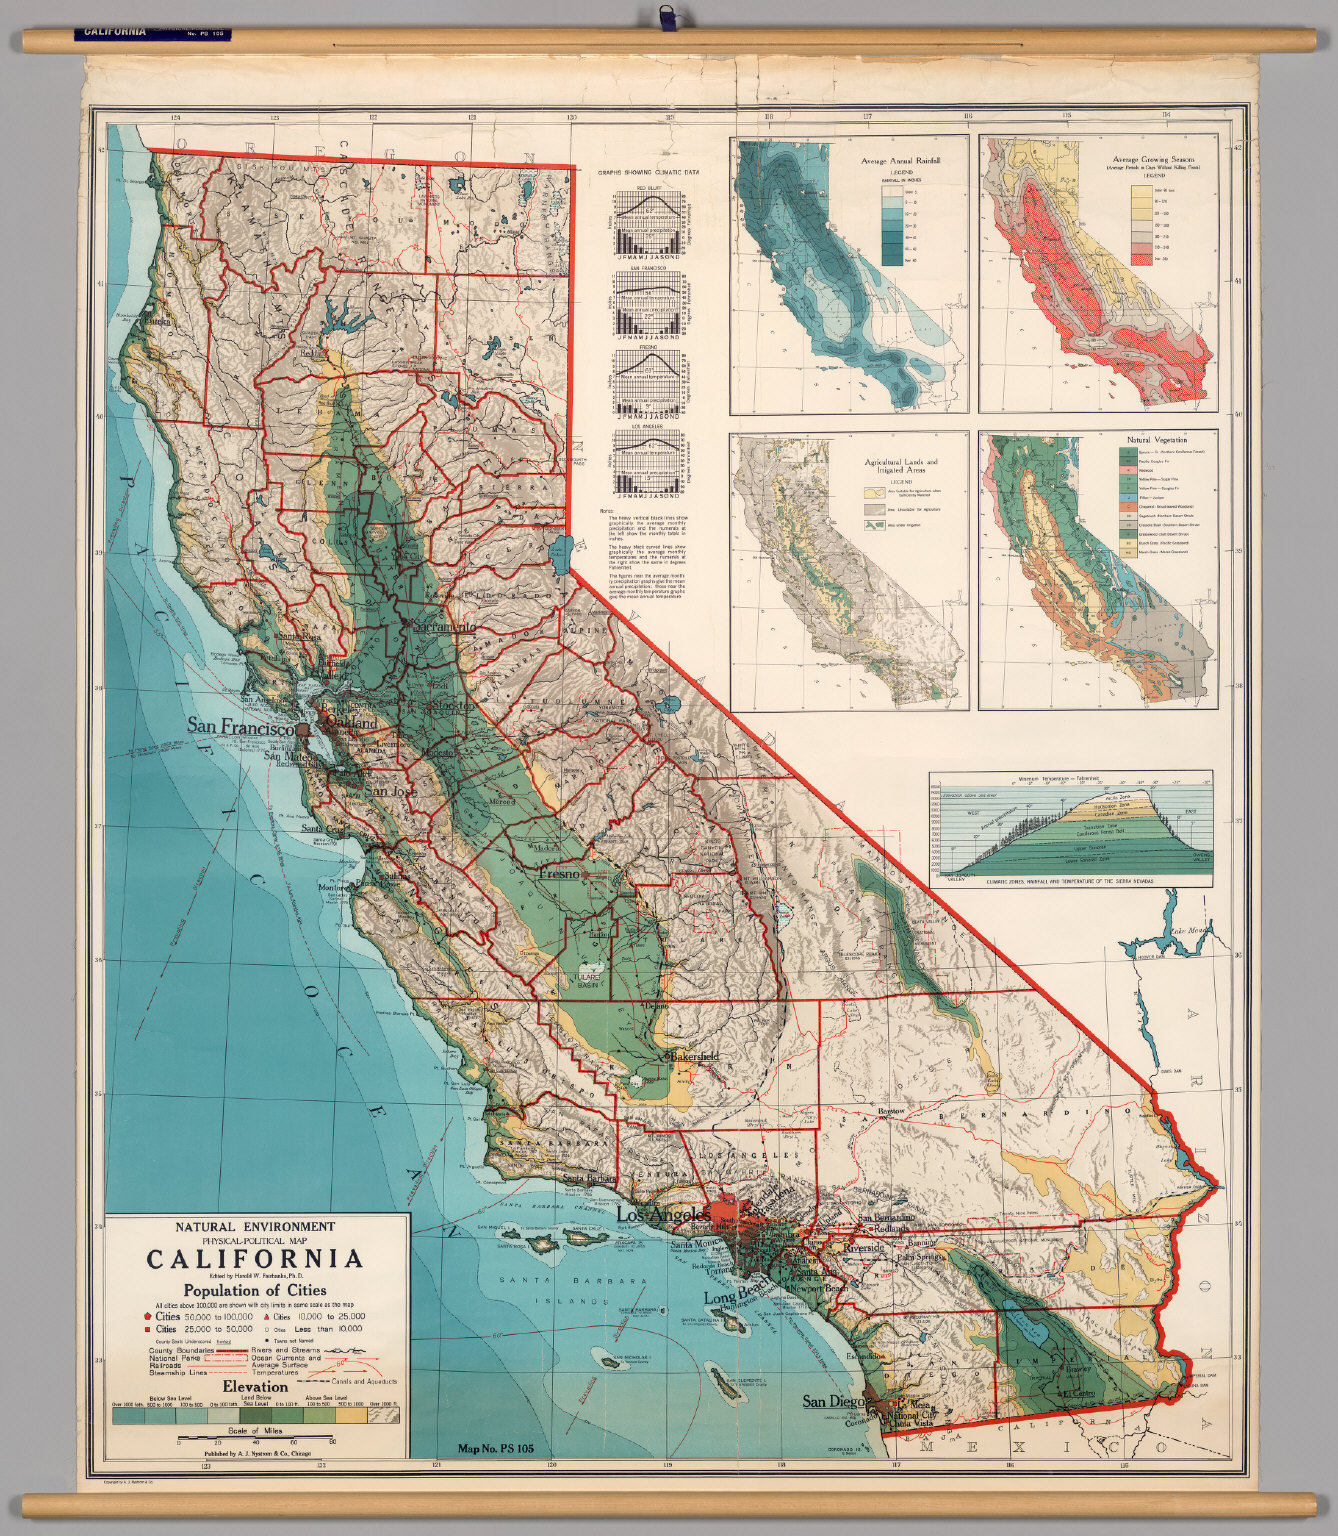 Physical Map Of California California    Physical Political   David Rumsey Historical Map  Physical Map Of California